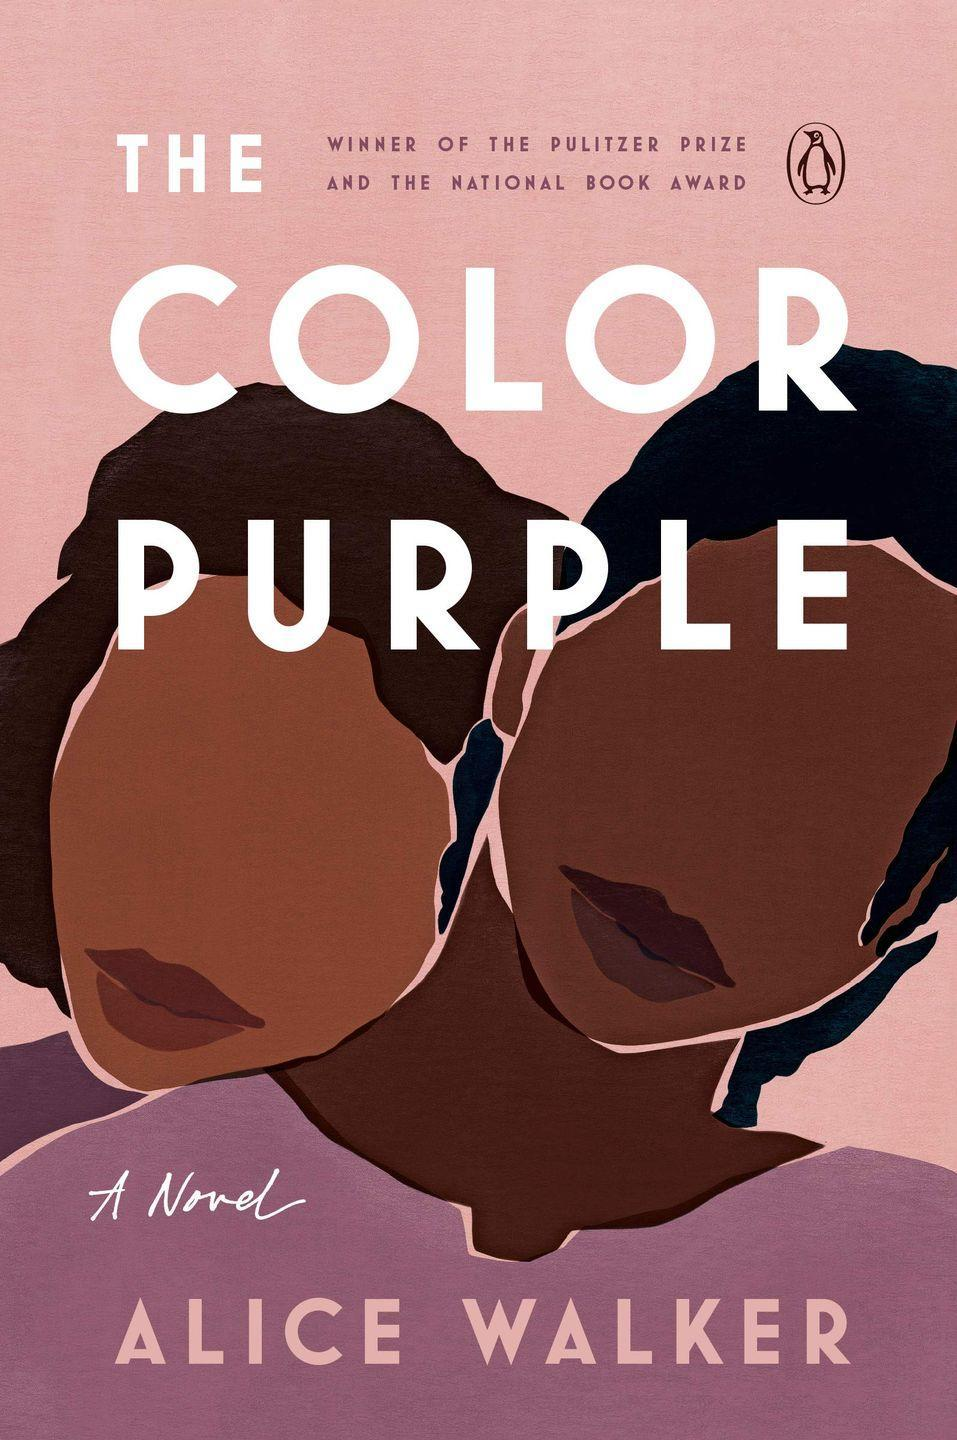 "<p><strong><em>The Color Purple </em>by Alice Walker</strong></p><p>$13.99 <a class=""link rapid-noclick-resp"" href=""https://www.amazon.com/Color-Purple-Novel-Alice-Walker/dp/0143135694/ref=tmm_pap_swatch_0?_encoding=UTF8&tag=syn-yahoo-20&ascsubtag=%5Bartid%7C10063.g.34149860%5Bsrc%7Cyahoo-us"" rel=""nofollow noopener"" target=""_blank"" data-ylk=""slk:BUY NOW"">BUY NOW</a></p><p>A powerful novel about domestic and sexual abuse, <em>The Color Purple</em> details the lives of African American women in rural Georgia in the early 20th century. </p><p>Readers will be taken on a journey through these women's pain, companionship, and resilience. It won a <em>Pulitzer Prize</em> in 1983 and was later adapted into a movie and a musical. </p>"